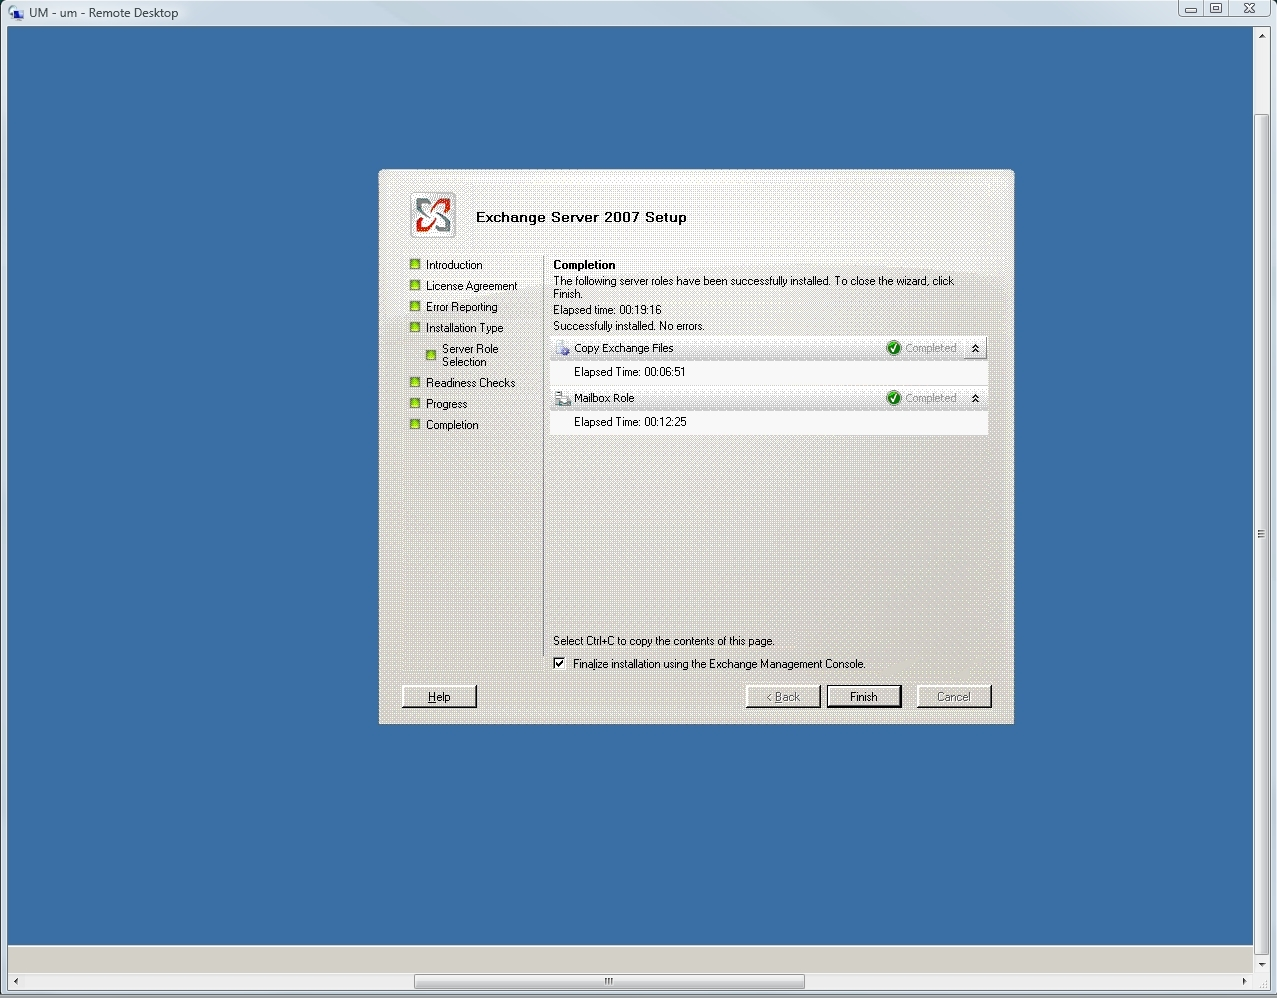 Finalize Exchange Server 2007 installation